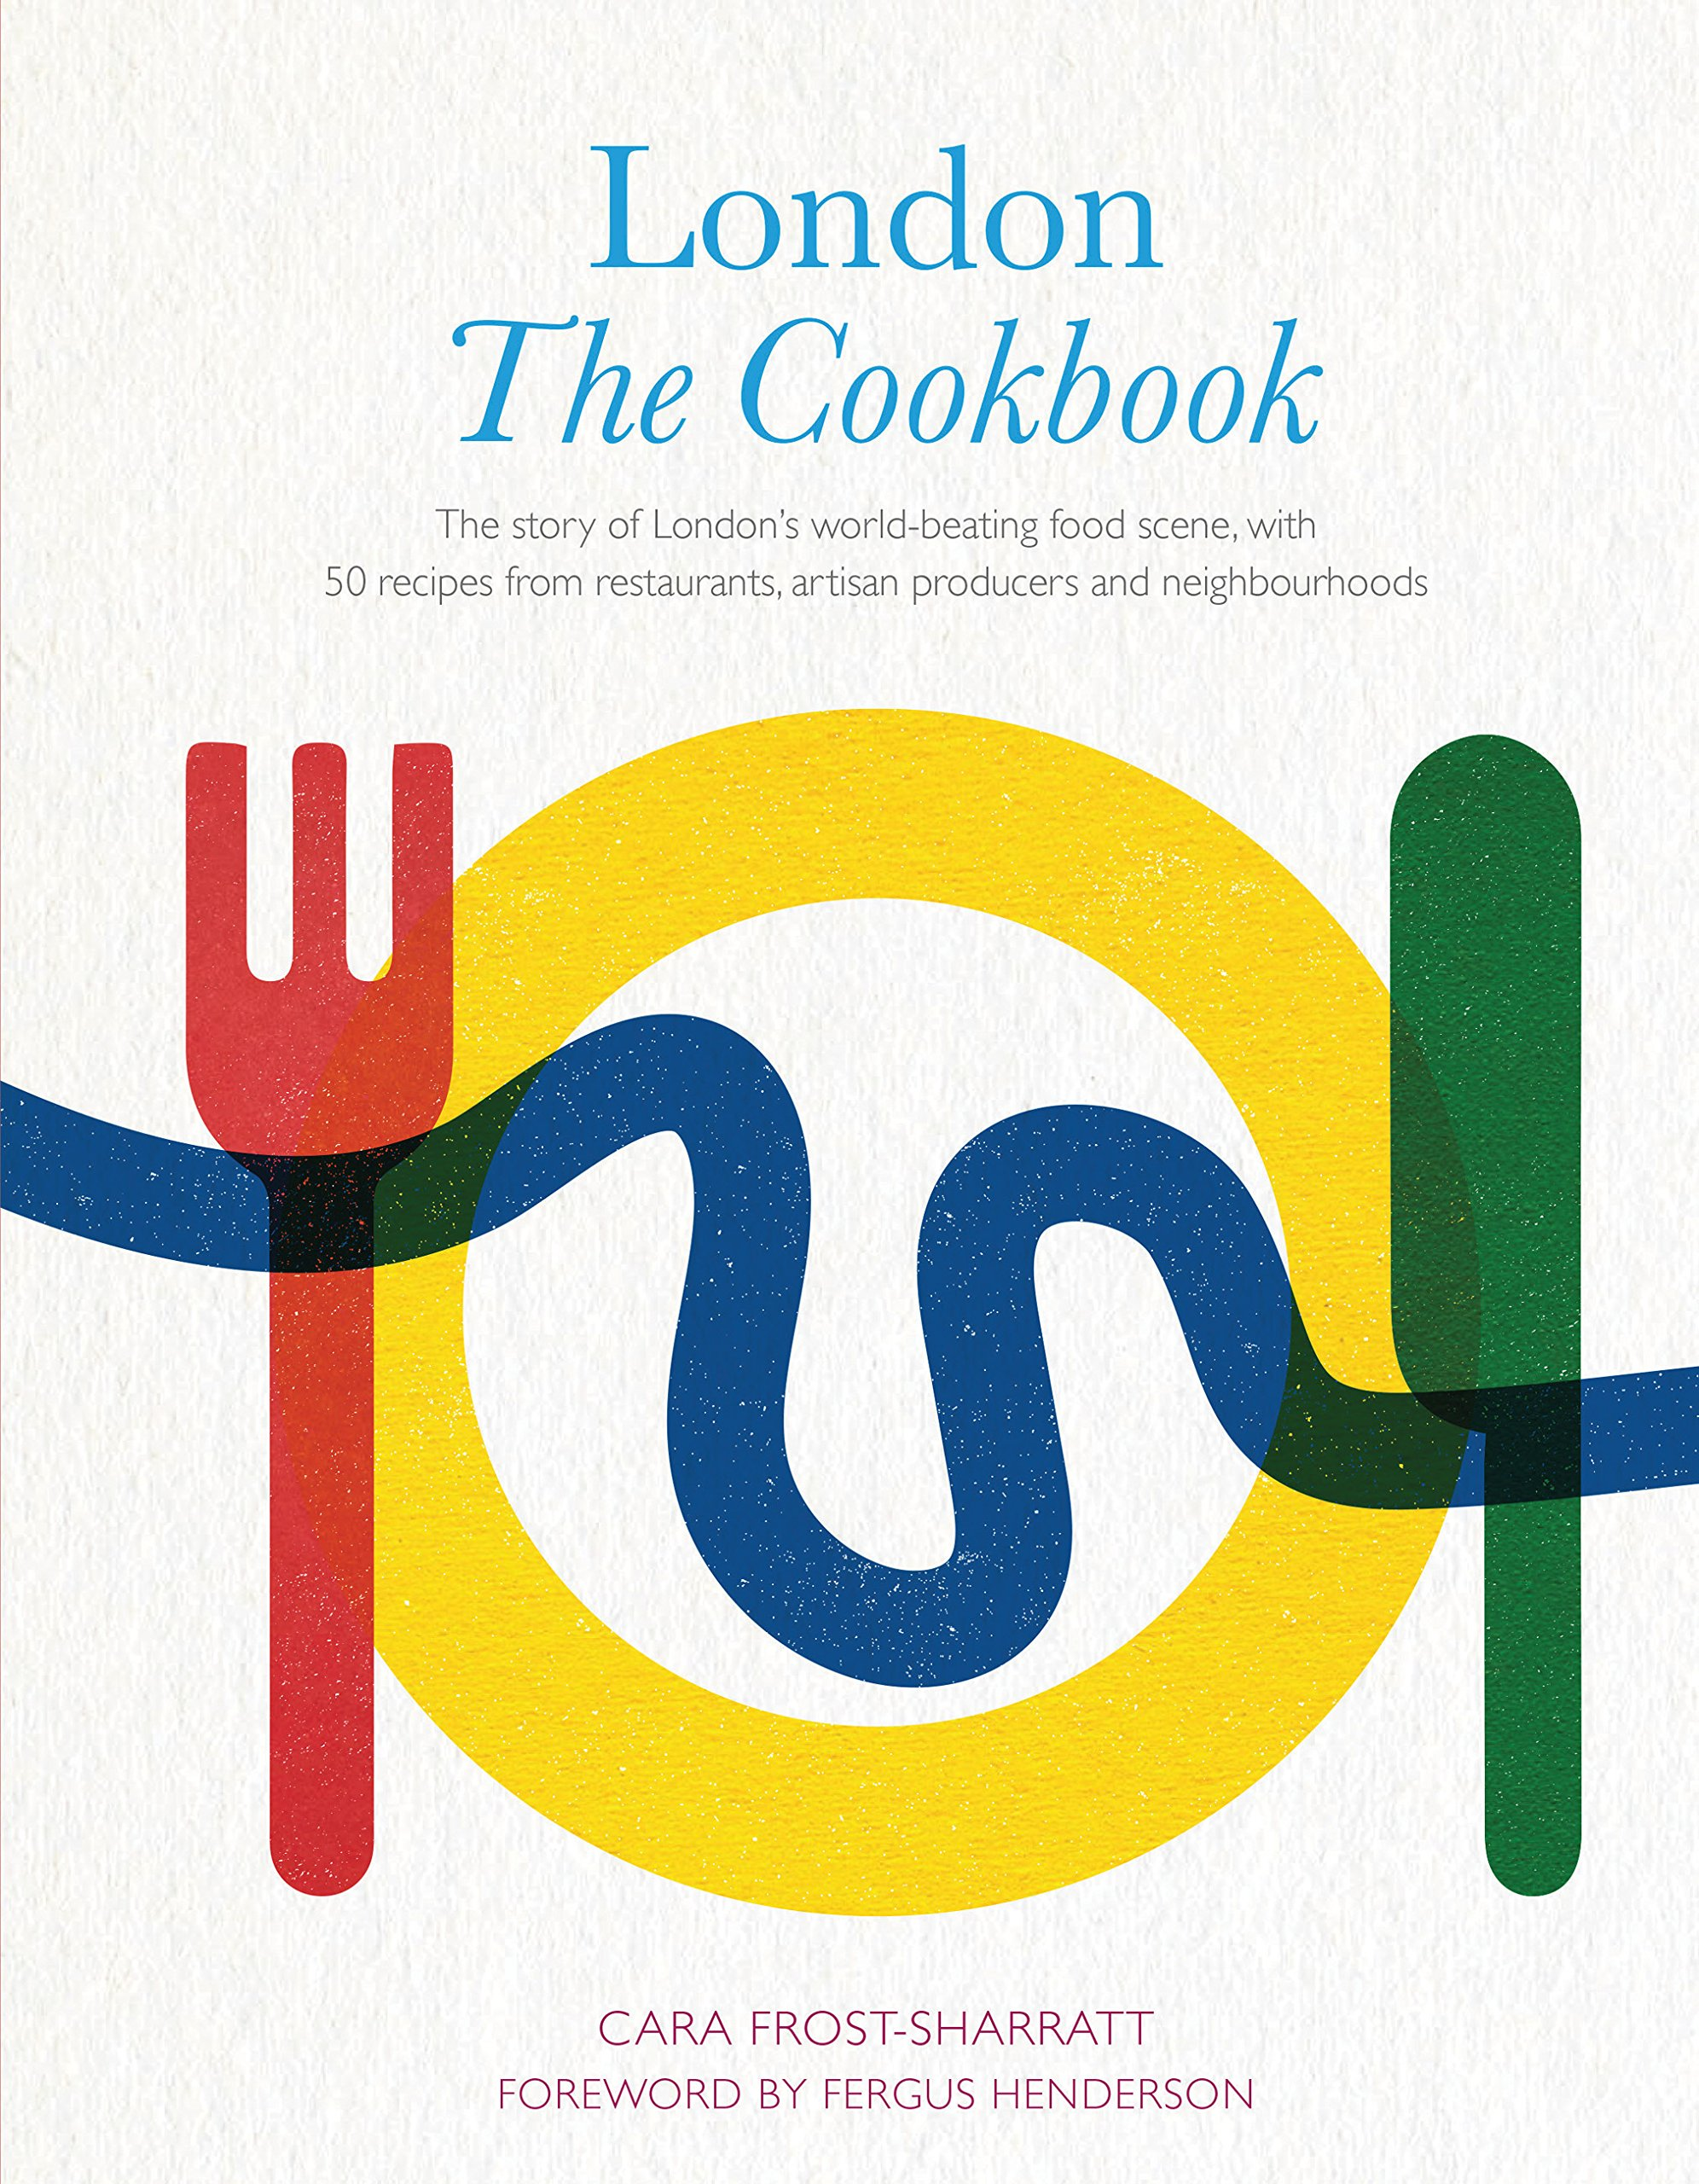 London: The Cookbook: The Story of London's world-beating food scene, with 50 recipes from restaurants, artisan producers and neighbourhoods ebook